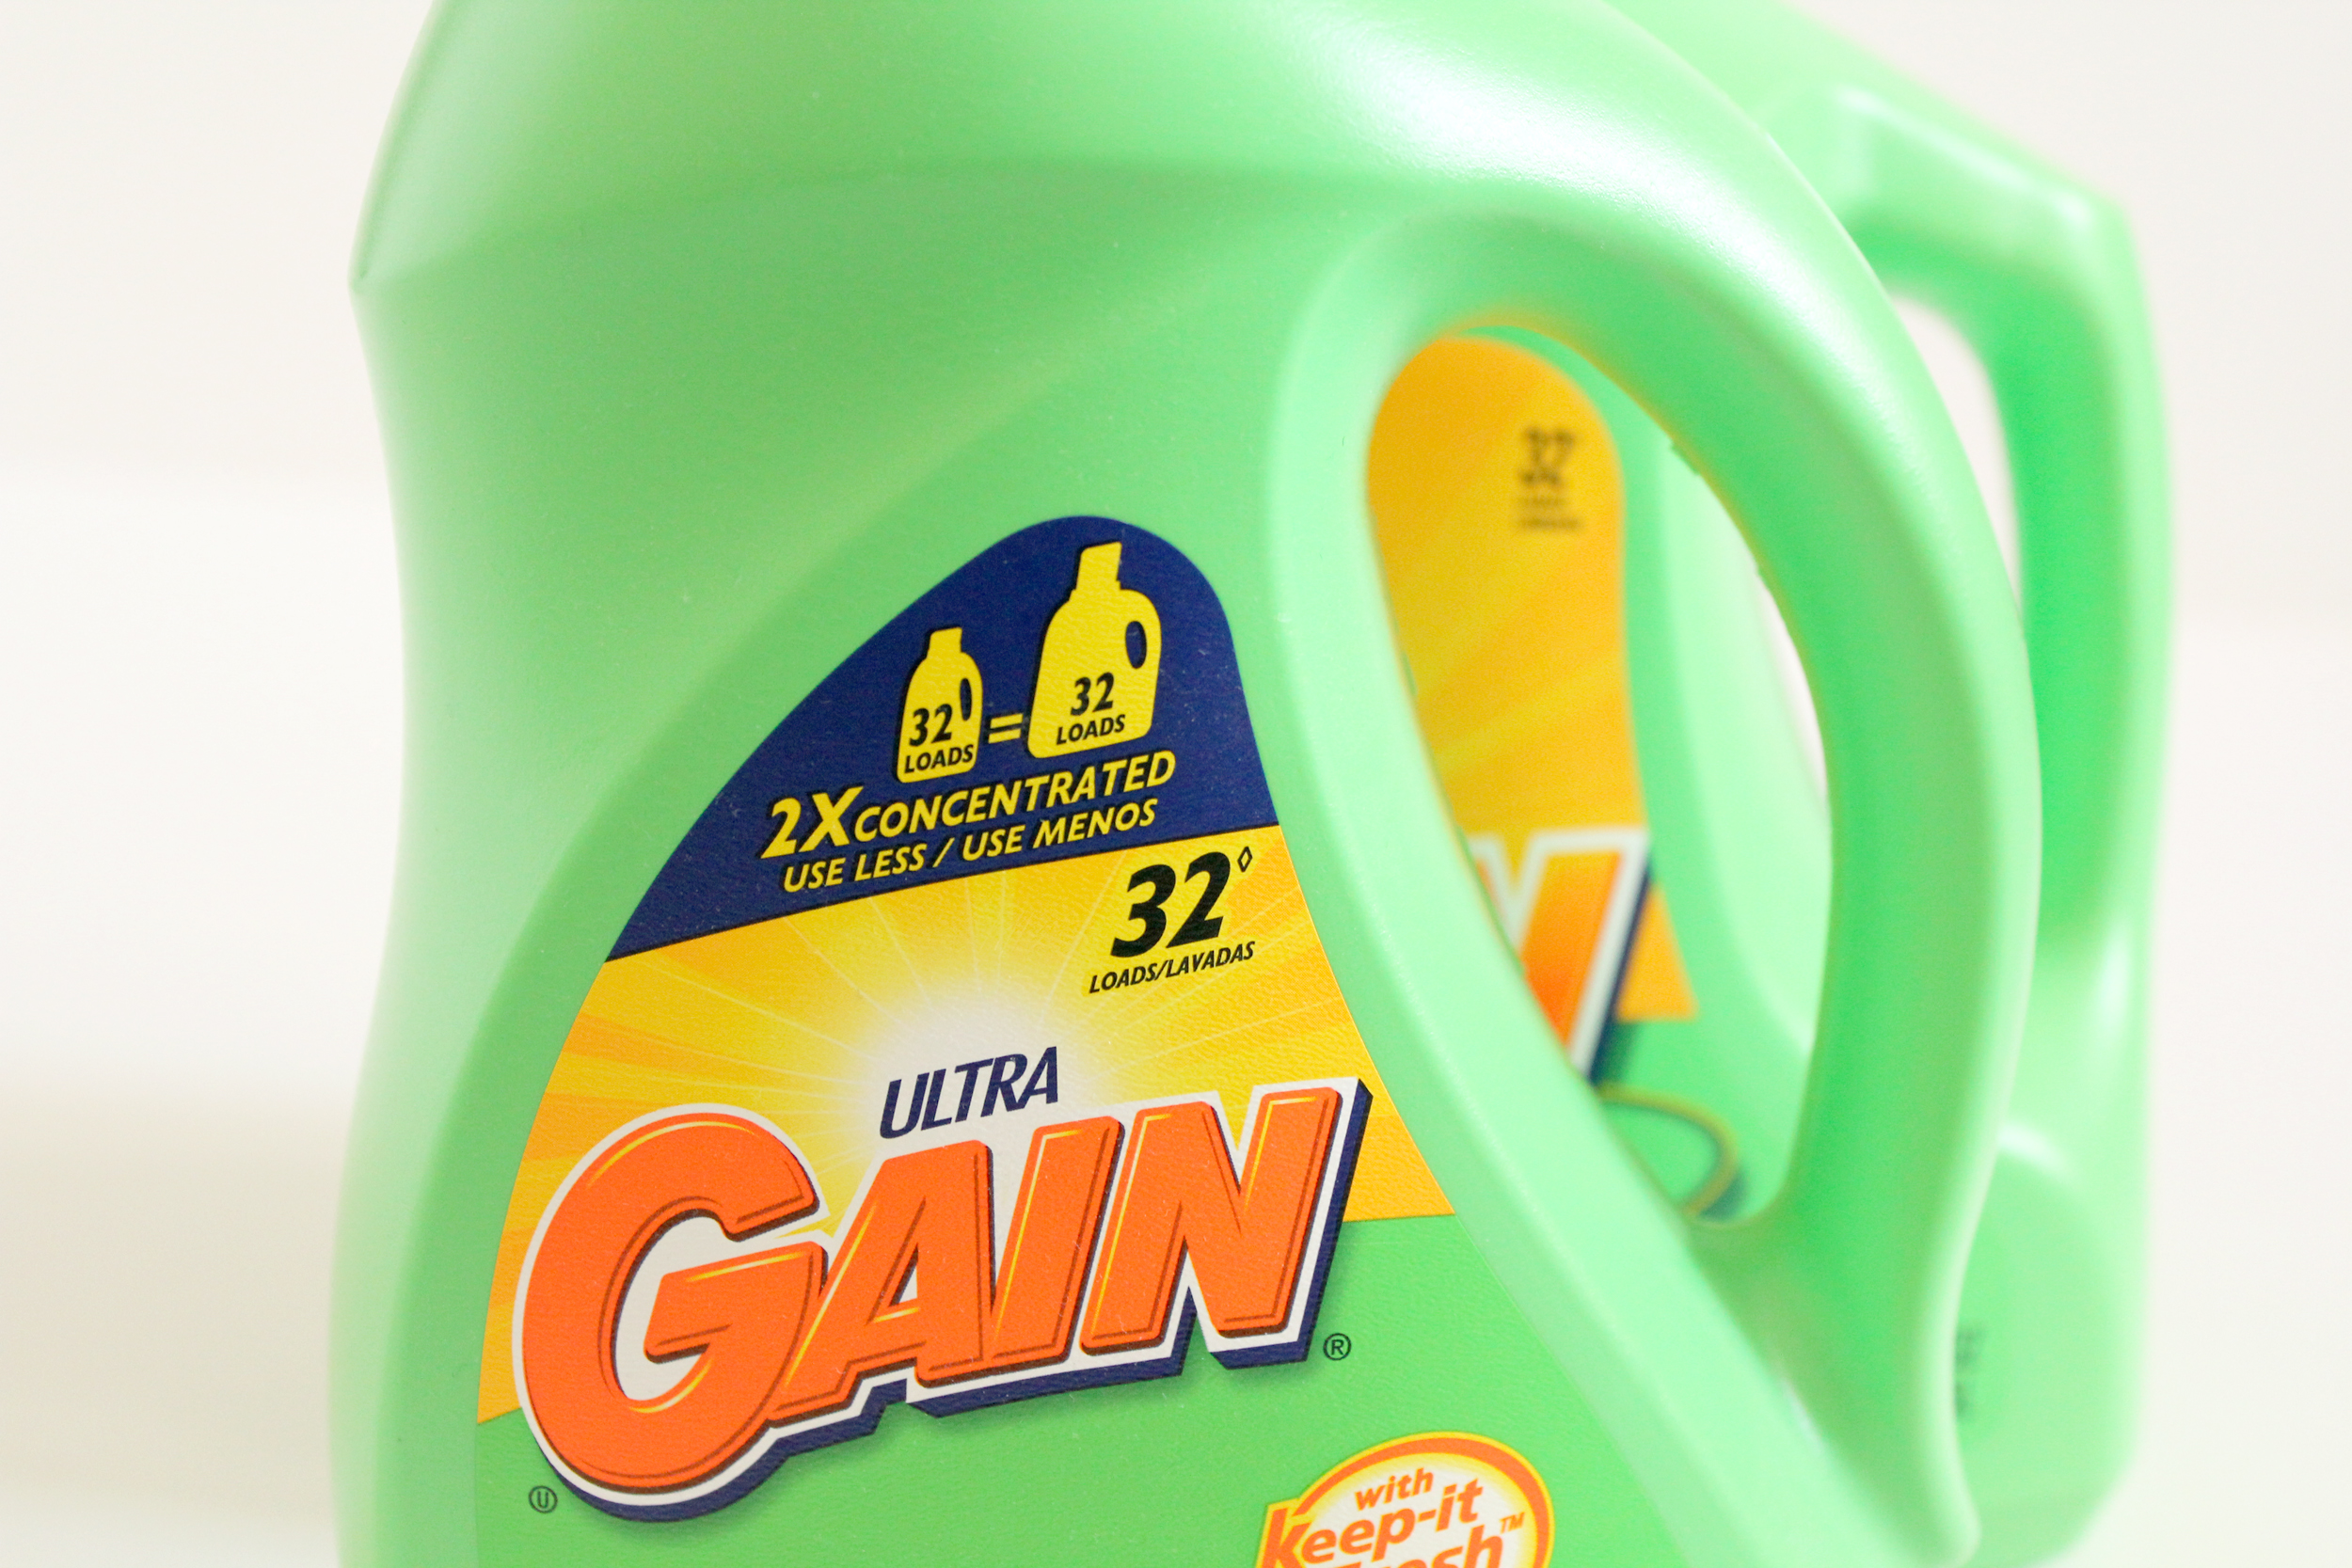 Gain bottle light bigger.jpg